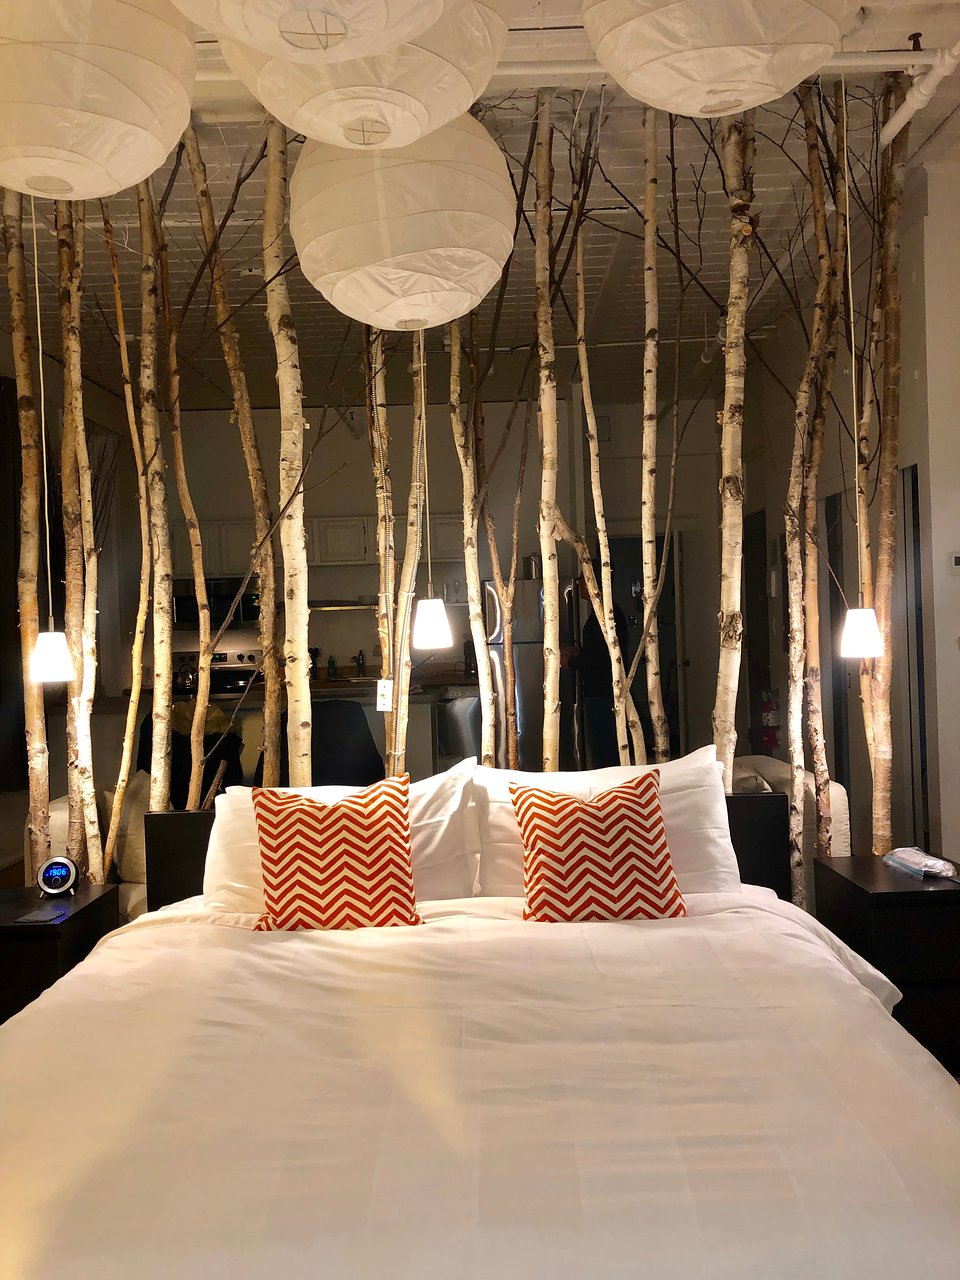 100 Remarquable Suggestions Chic & Budget 131 Guest House